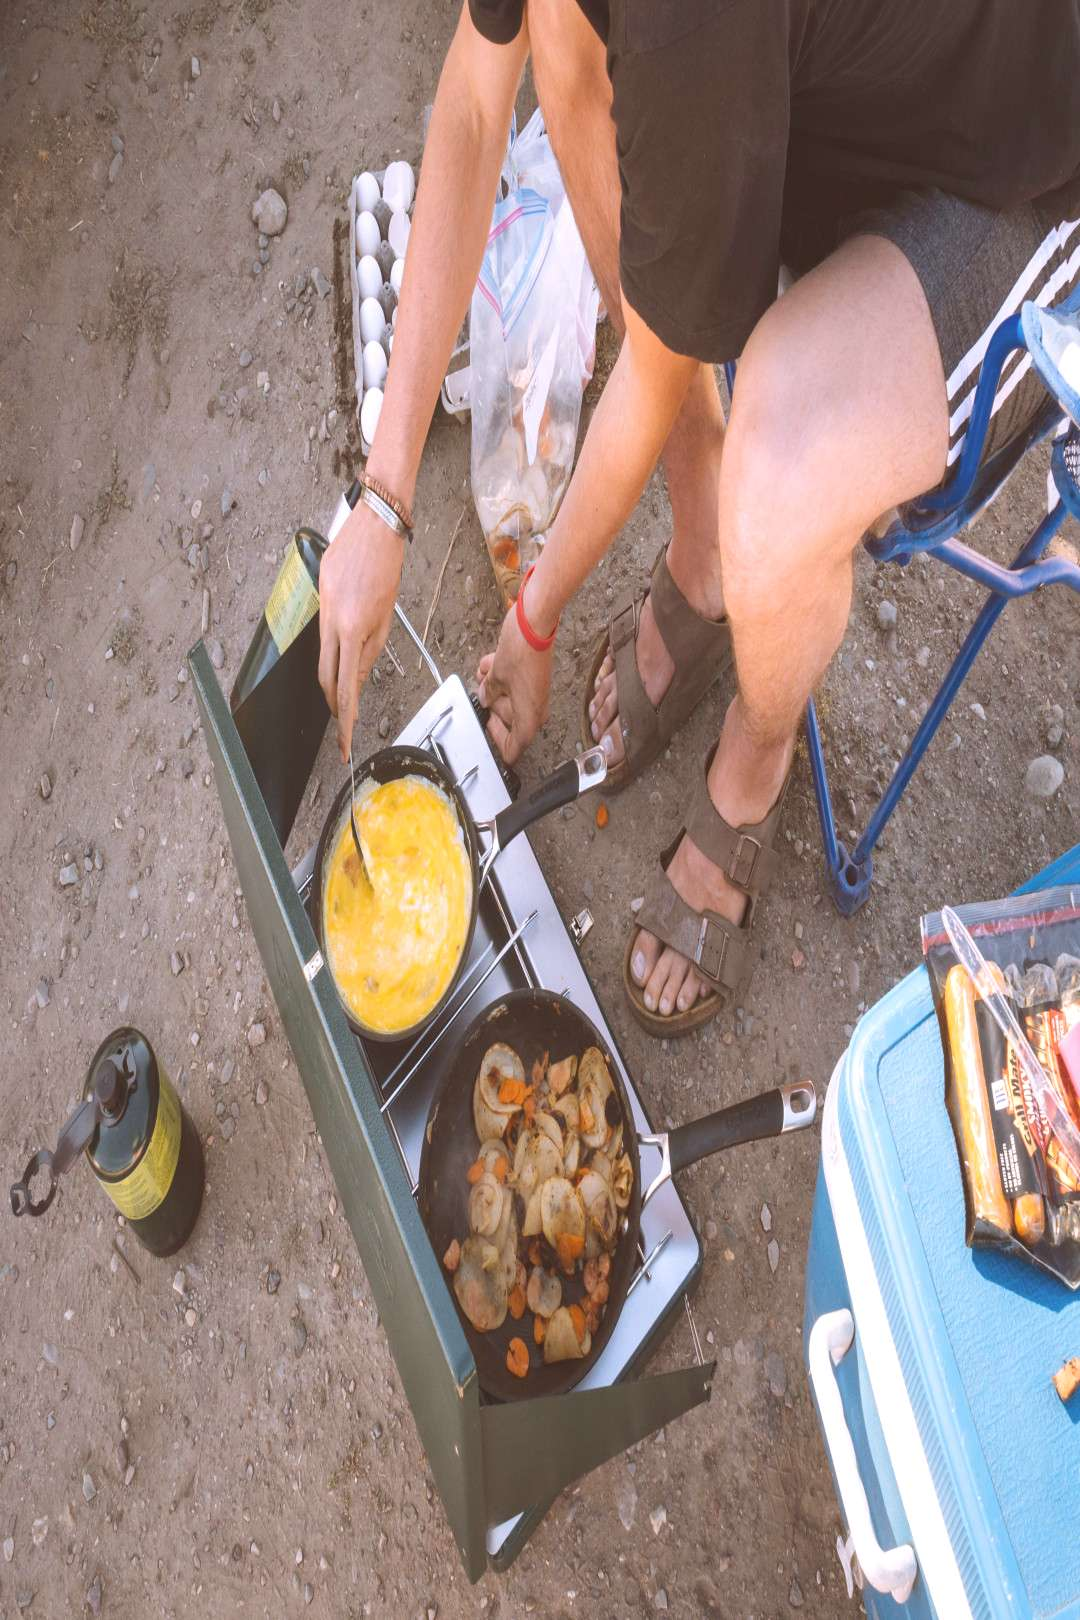 Camp Breakfast – Scrambled eggs, potatoes, carrots, onions, amp left-over sausages. – Camping -